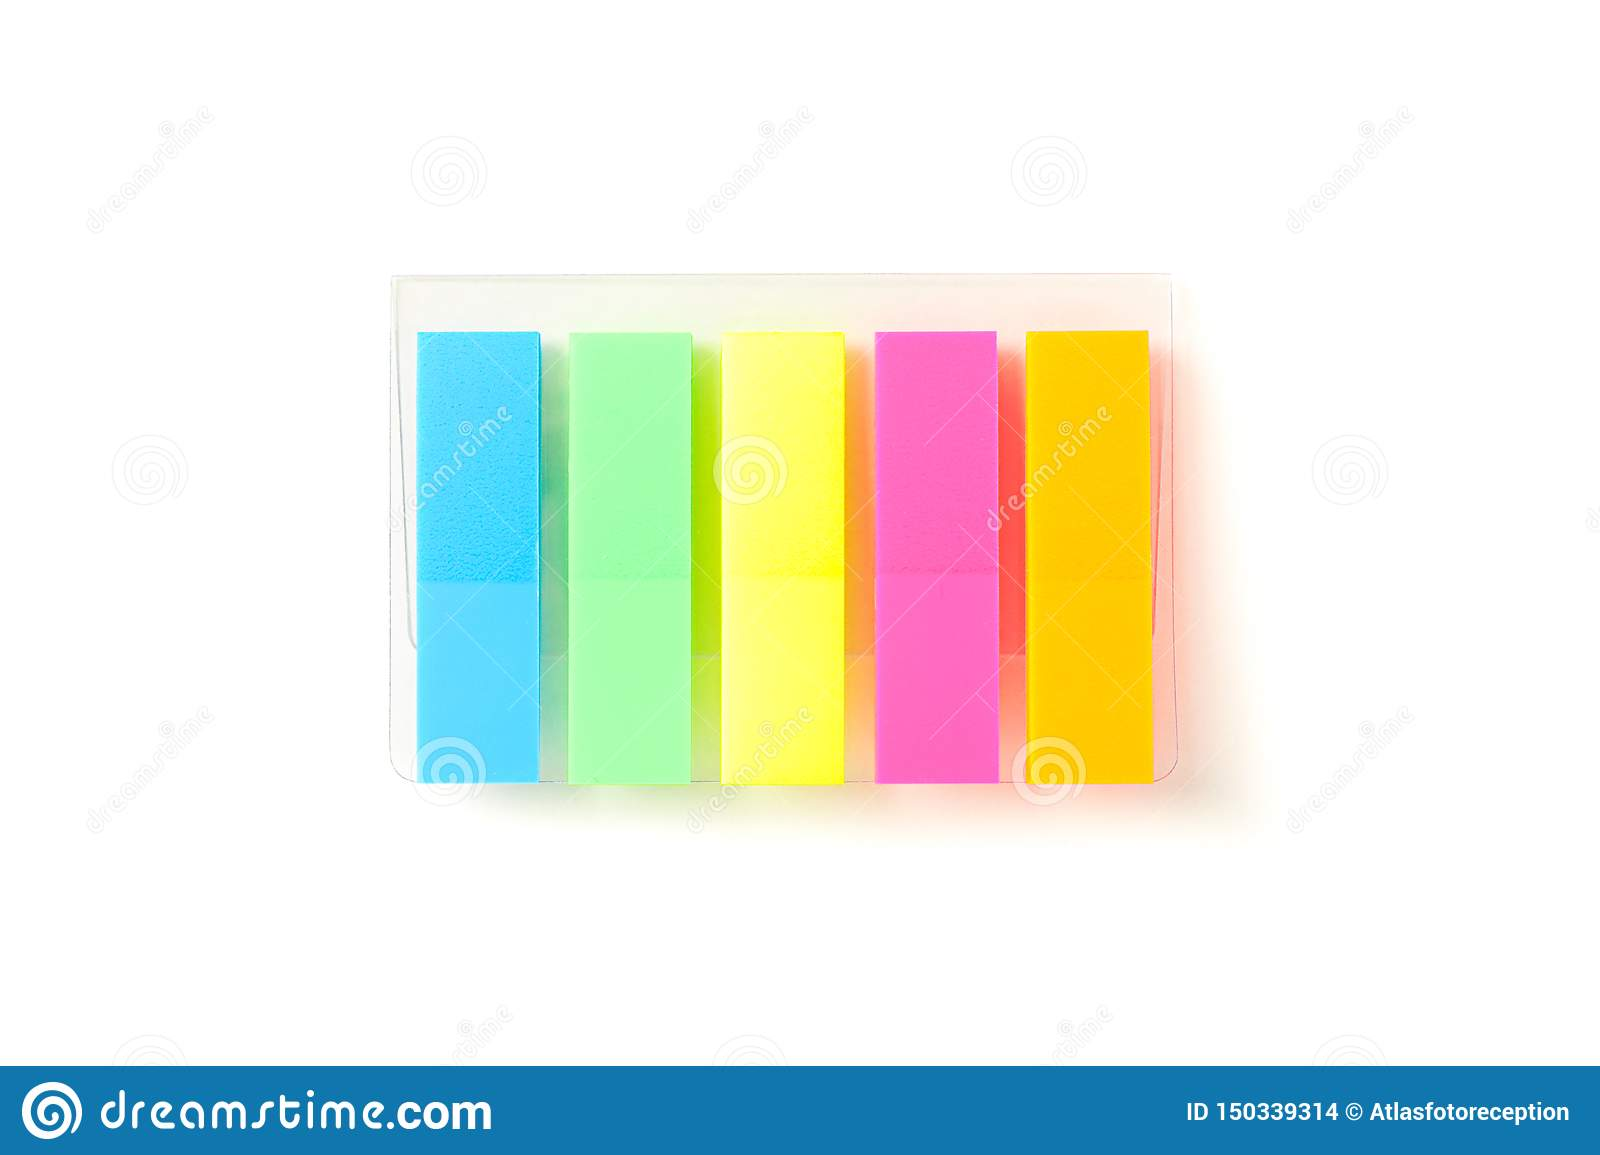 Color stickers in transparent packaging isolated